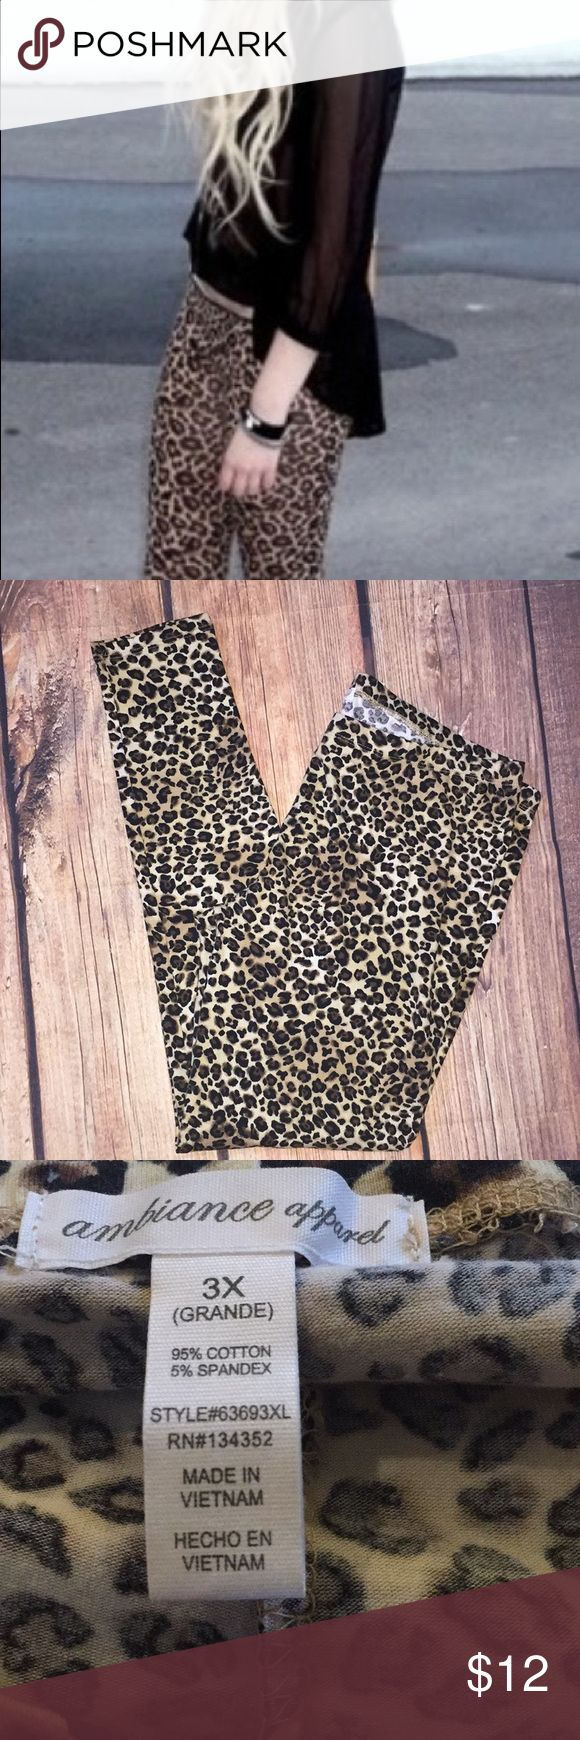 NEW AMBIANCE Cheetah Tights Leggings plus Sz 3X NEW AMBIANCE Cheetah Tights Leggings plus Sz 3X or XXXL Ambiance Apparel Pants Leggings